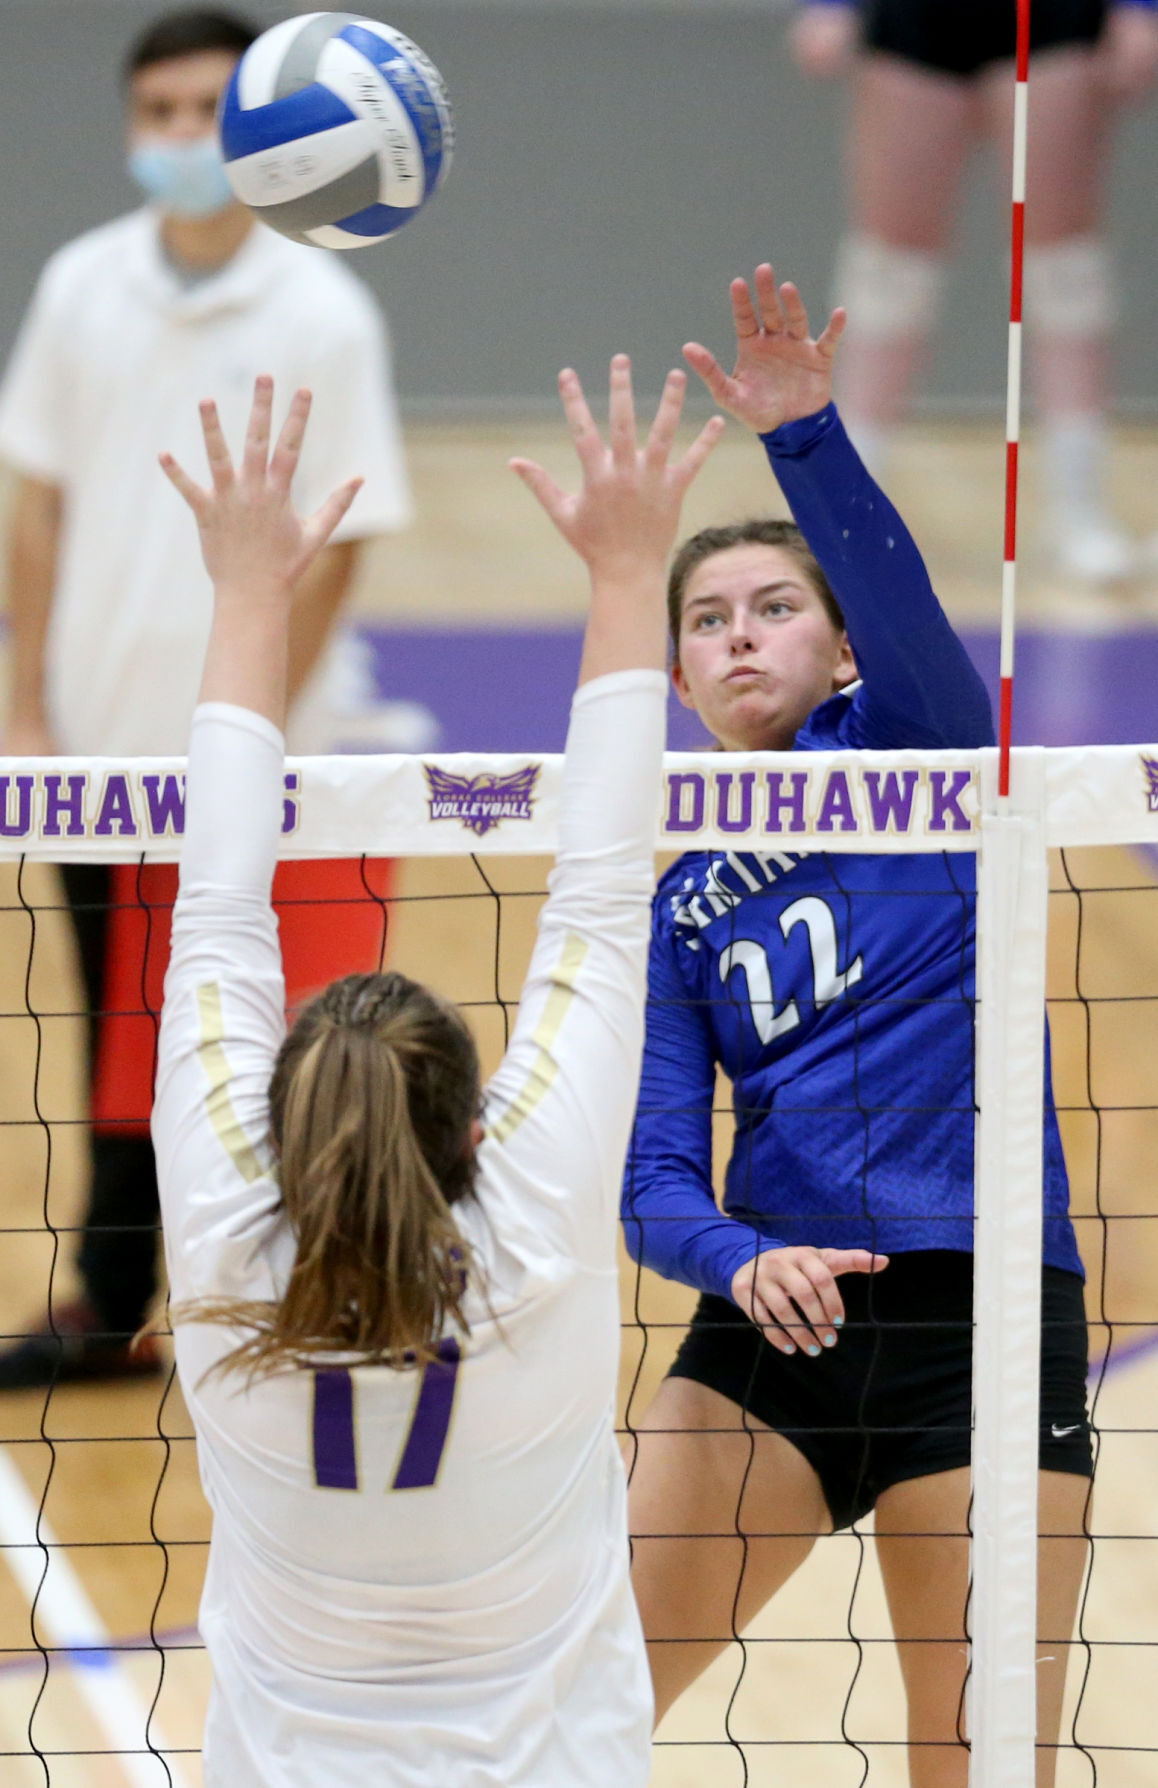 Loras vs. University of Dubuque's volleyball